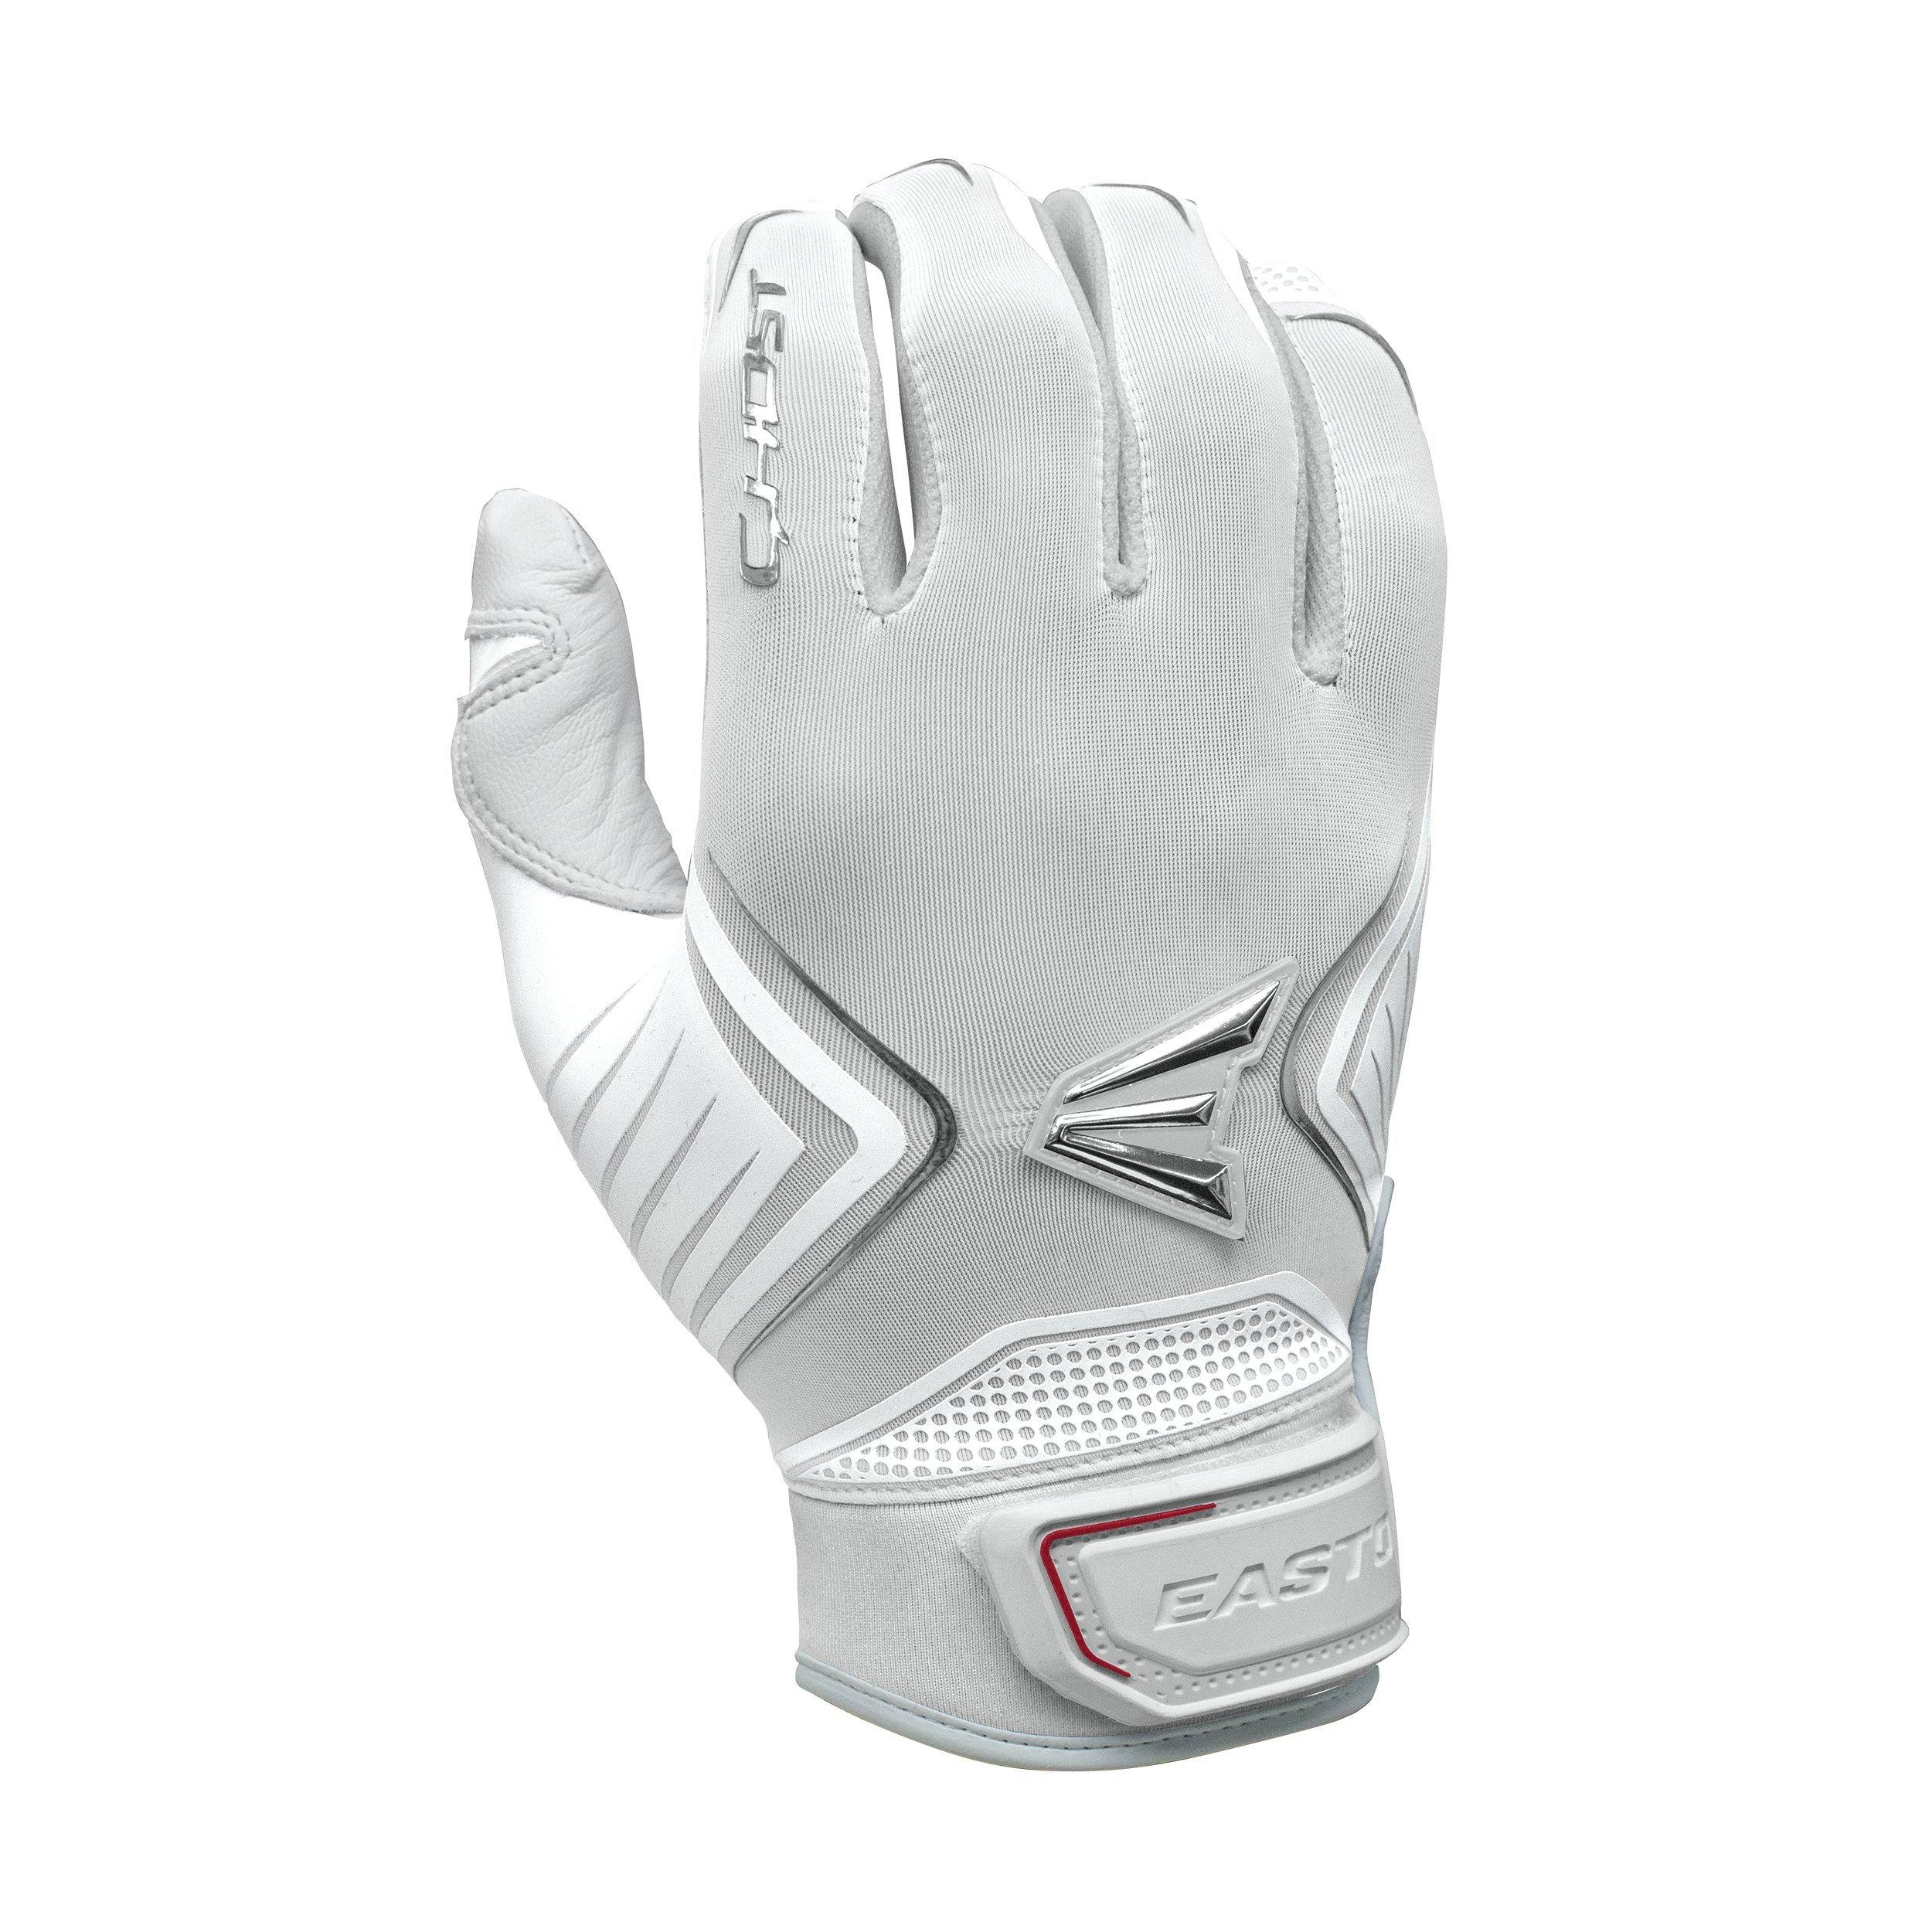 Easton Ghost Fastpitch Batting Gloves